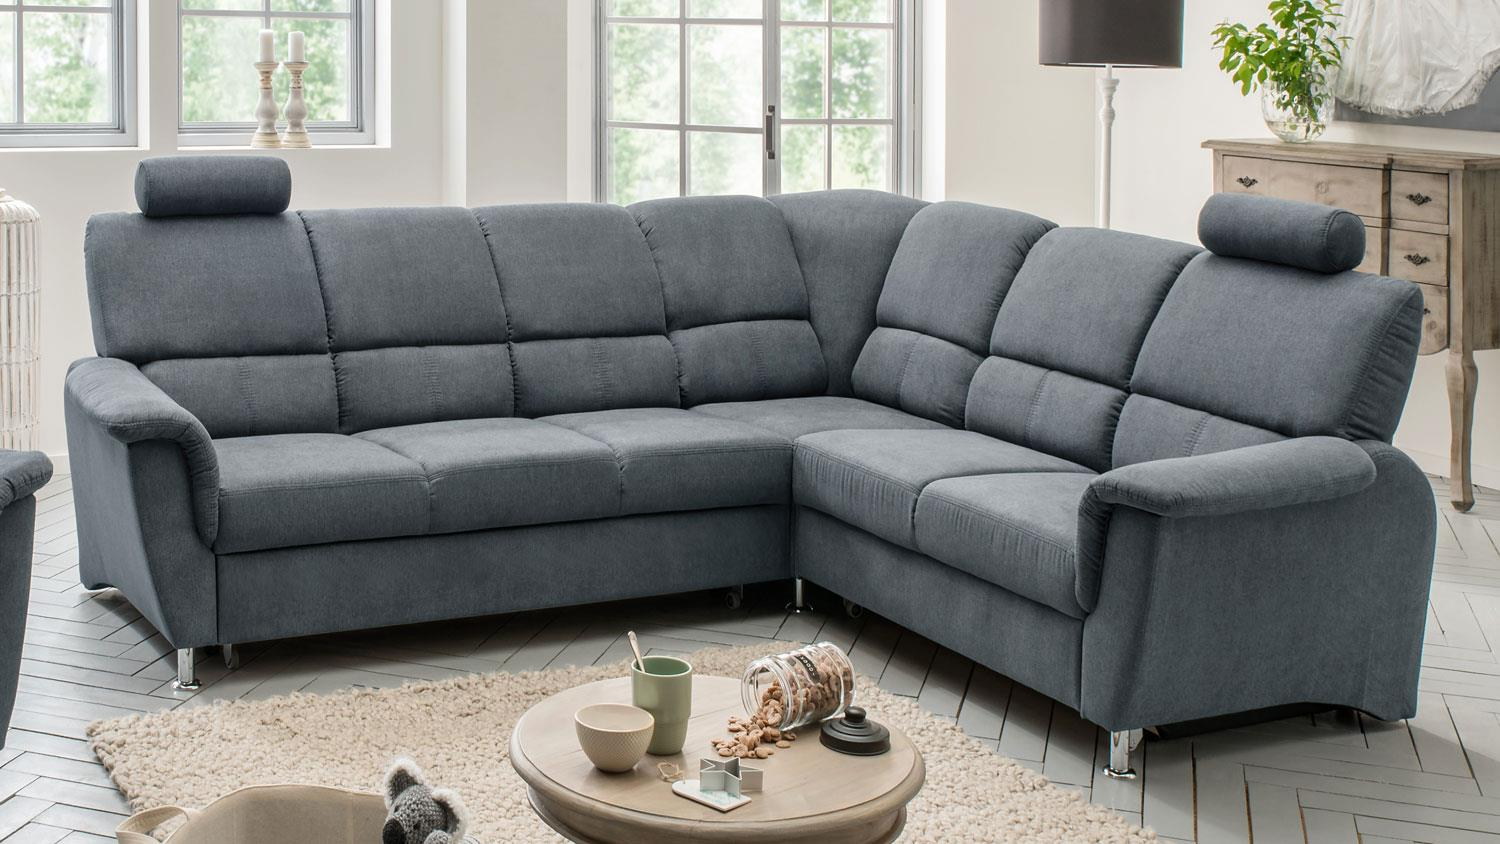 Ledersofa Anthrazit Ecksofa Pisa Eckgarnitur L Sofa Anthrazit Mit Bettfunktion